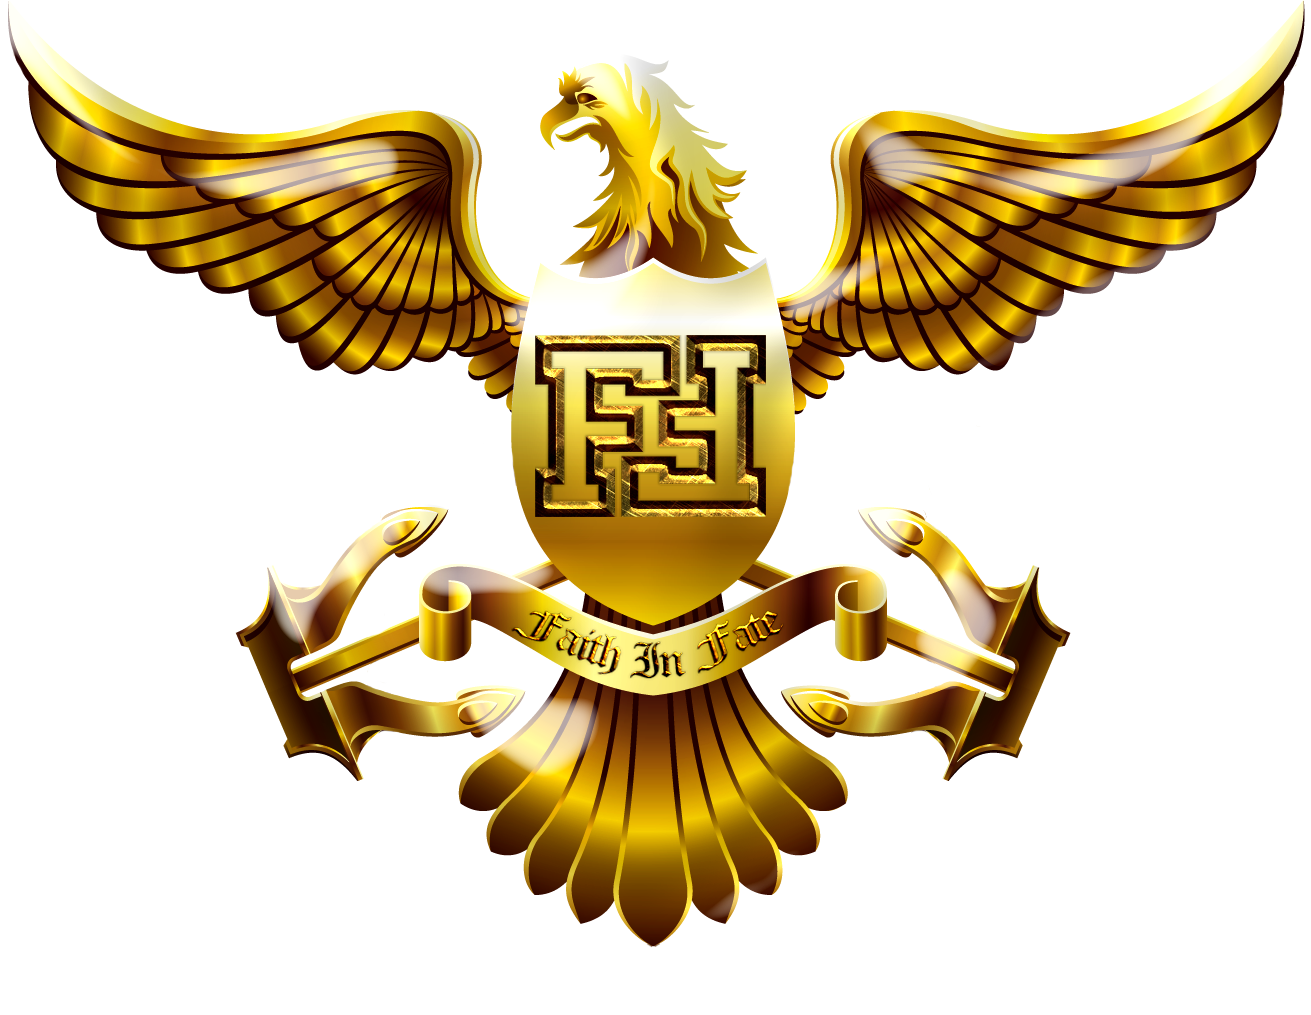 gold eagle shield logo png 3231